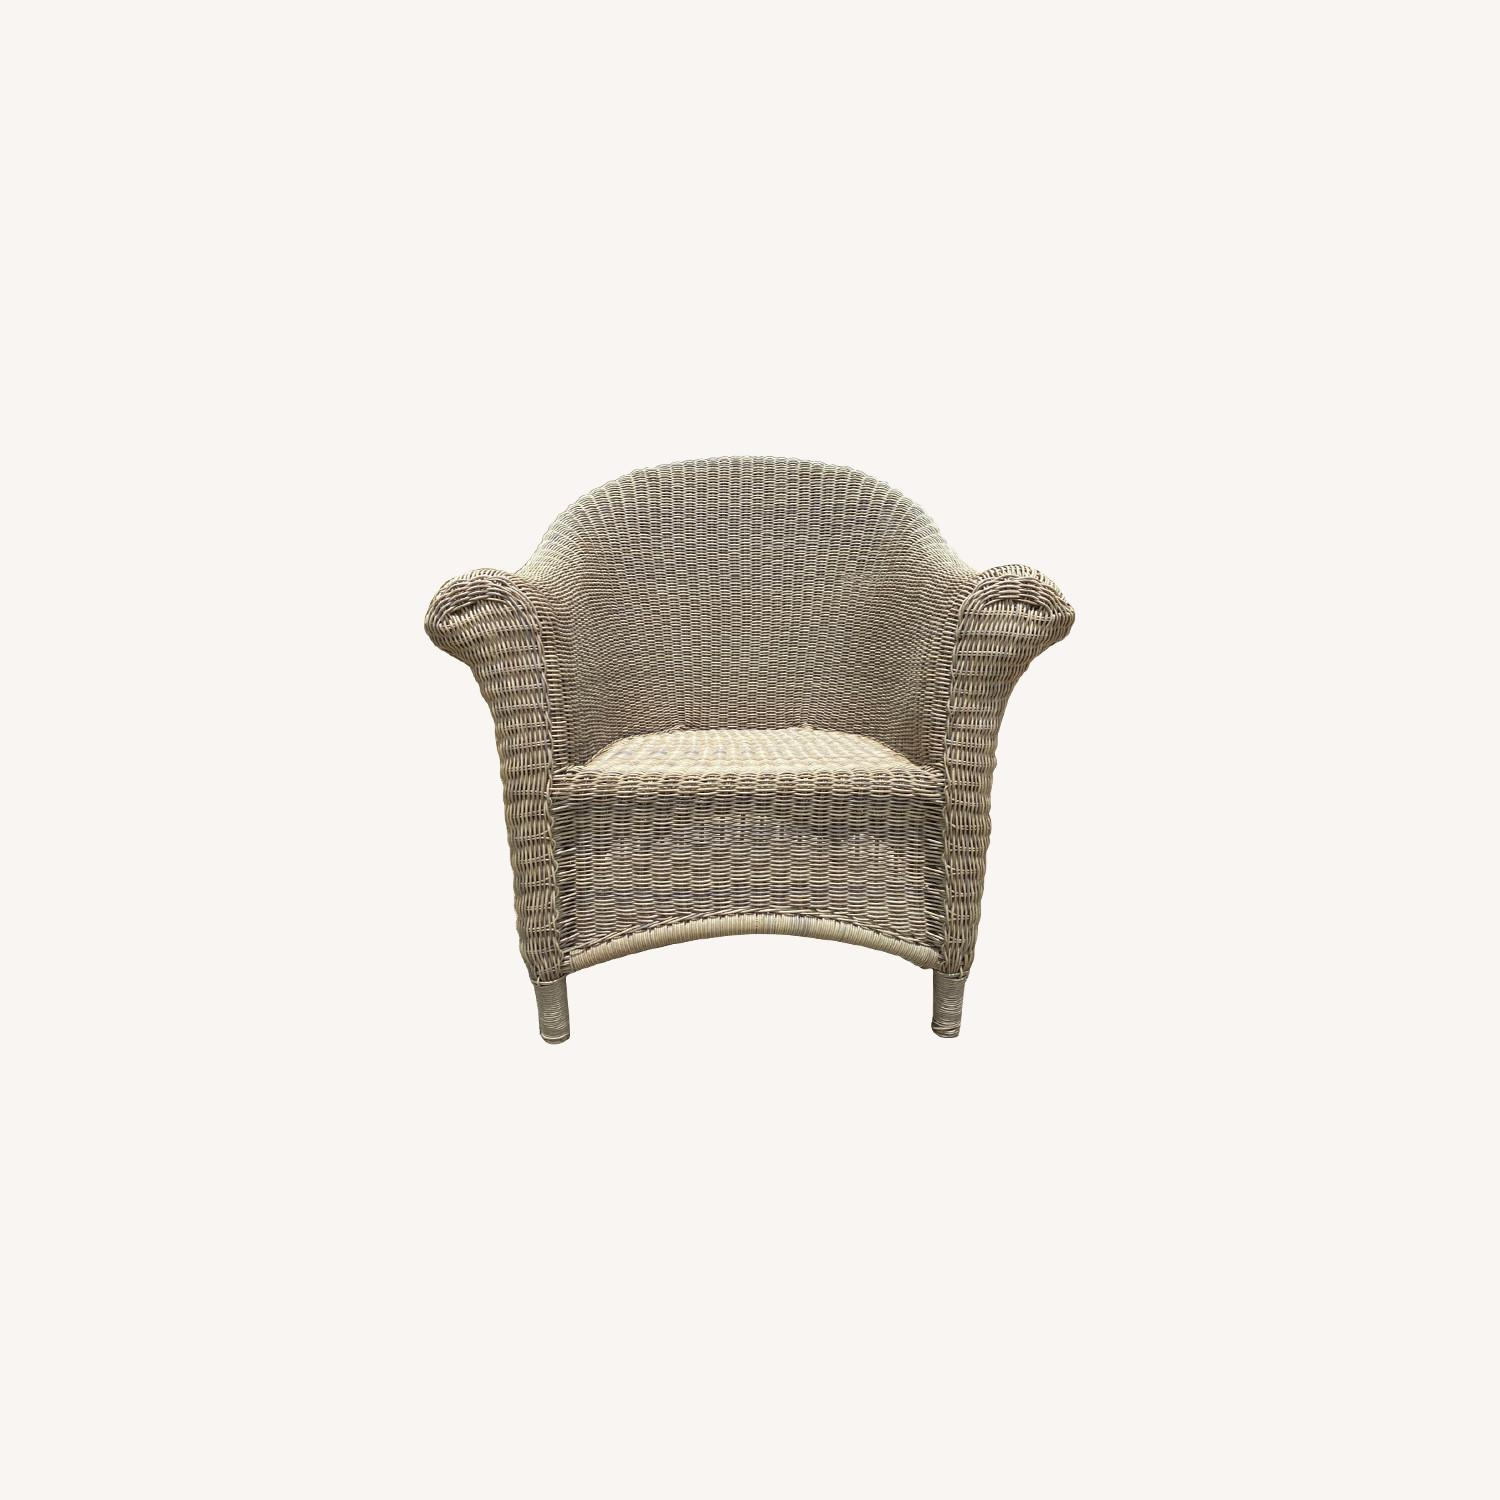 Two Restoration Hardware Outdoor Lounge Chairs - image-0